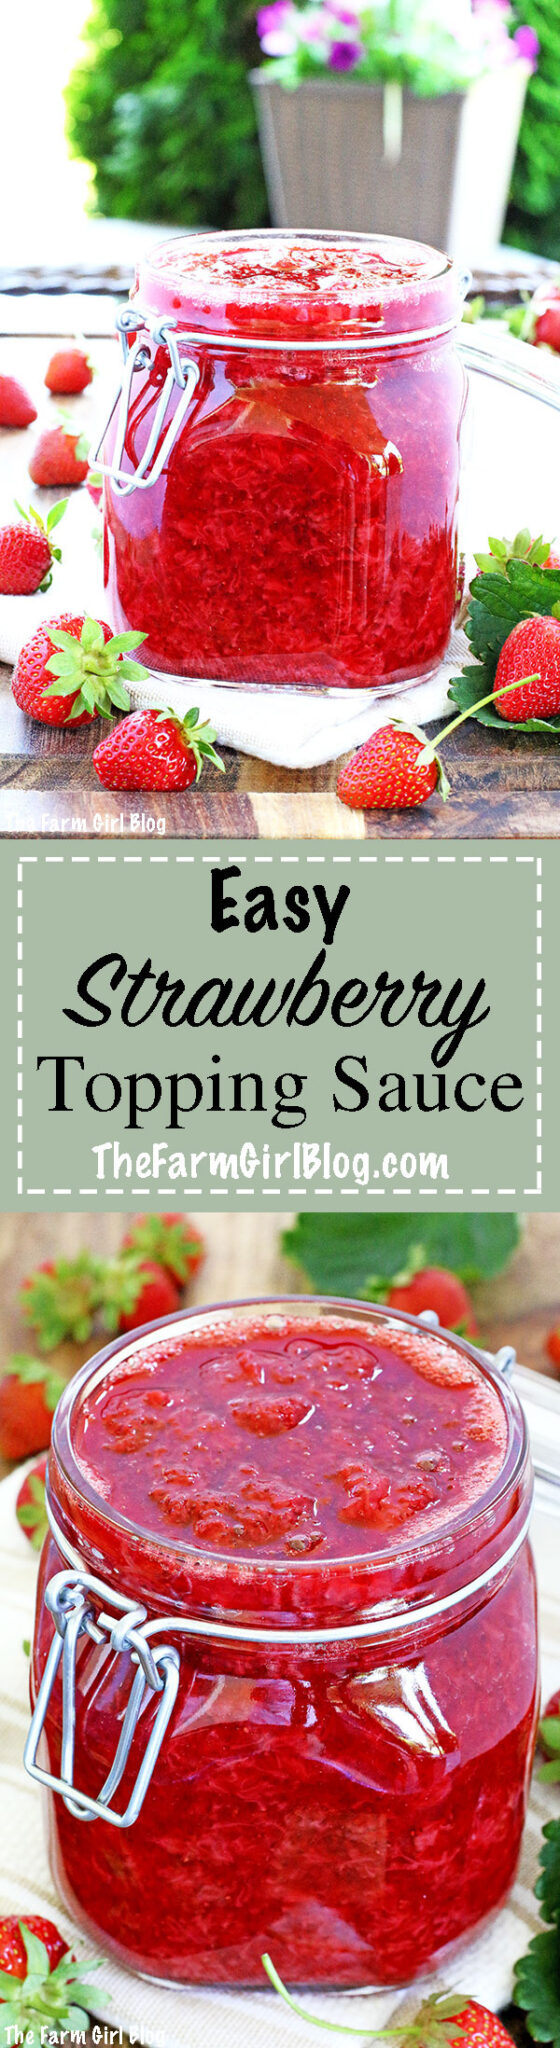 This Easy Strawberry Topping Sauce Recipe is my super simple and delicious go-to recipe for whatever you desire. It only has two ingredients, it's that easy! It is perfect on pancakes, waffles, ice cream, soaking cake sponges, or any desserts, like cheesecake is one example.